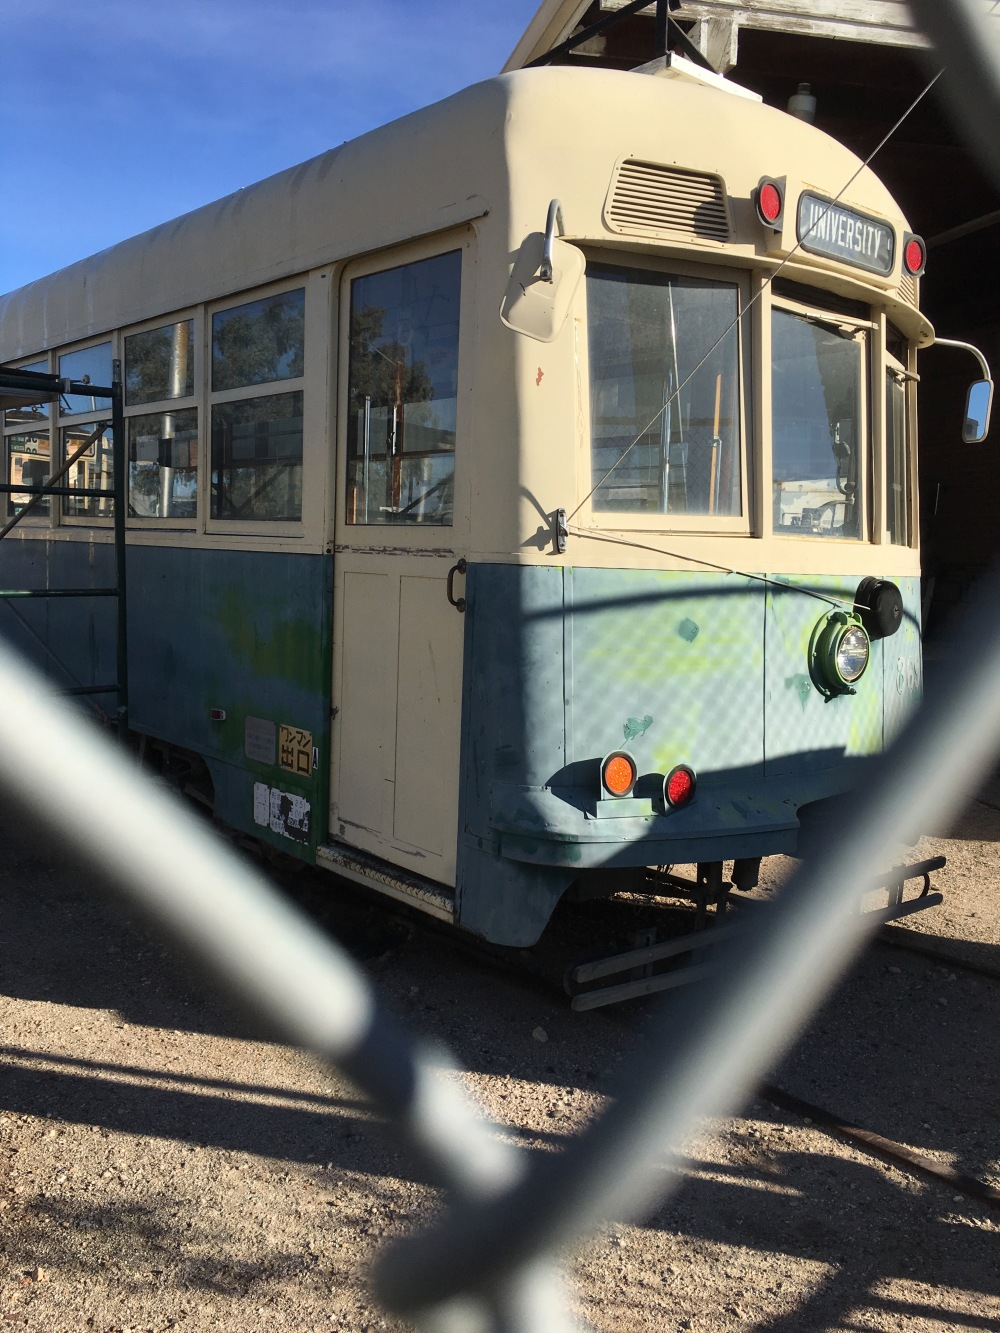 Trolley Car Museum, Tucson, Arizona